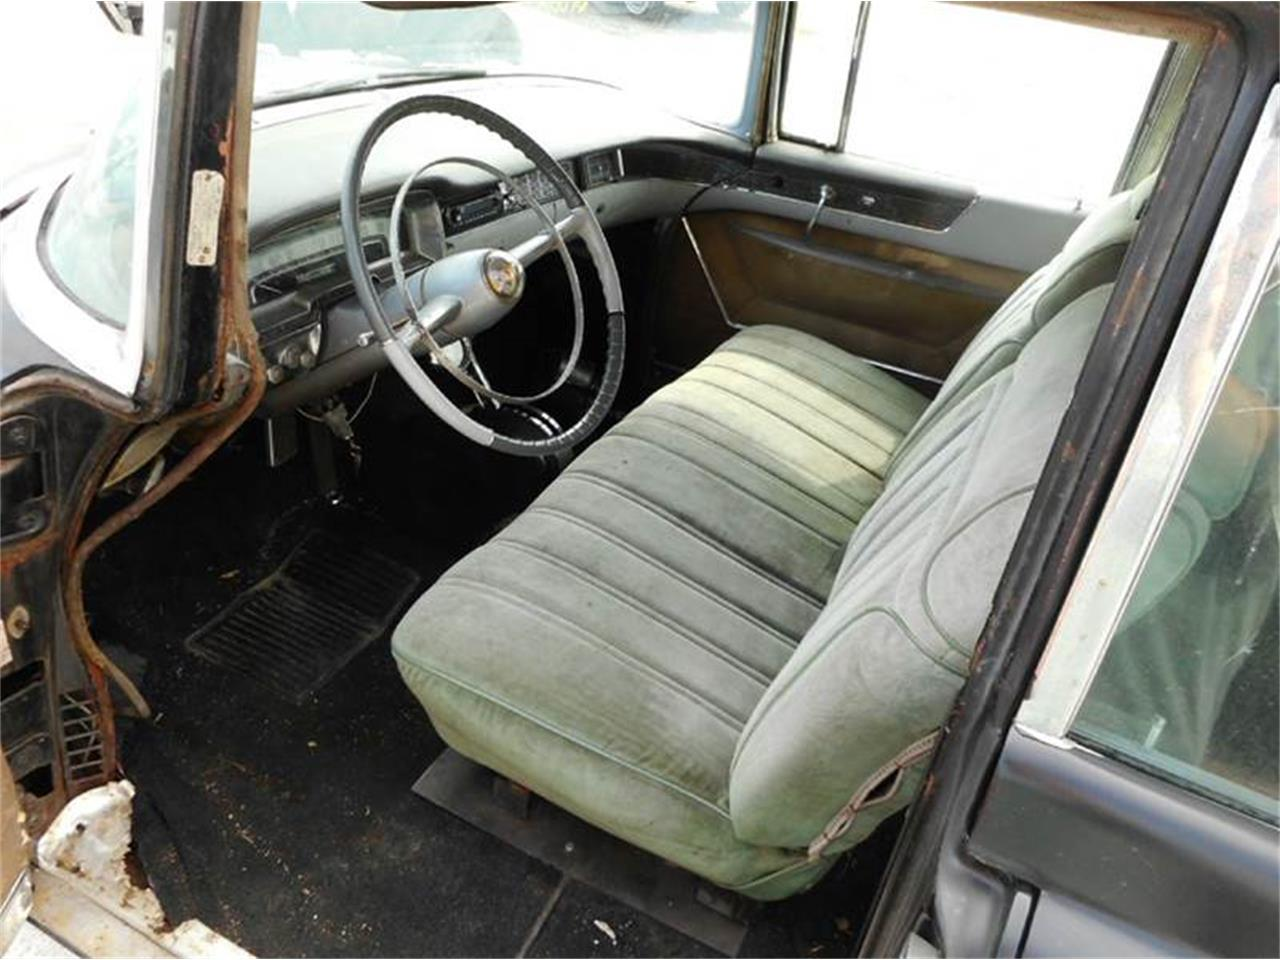 1955 Cadillac 4-Dr Sedan (CC-1374218) for sale in Staunton, Illinois